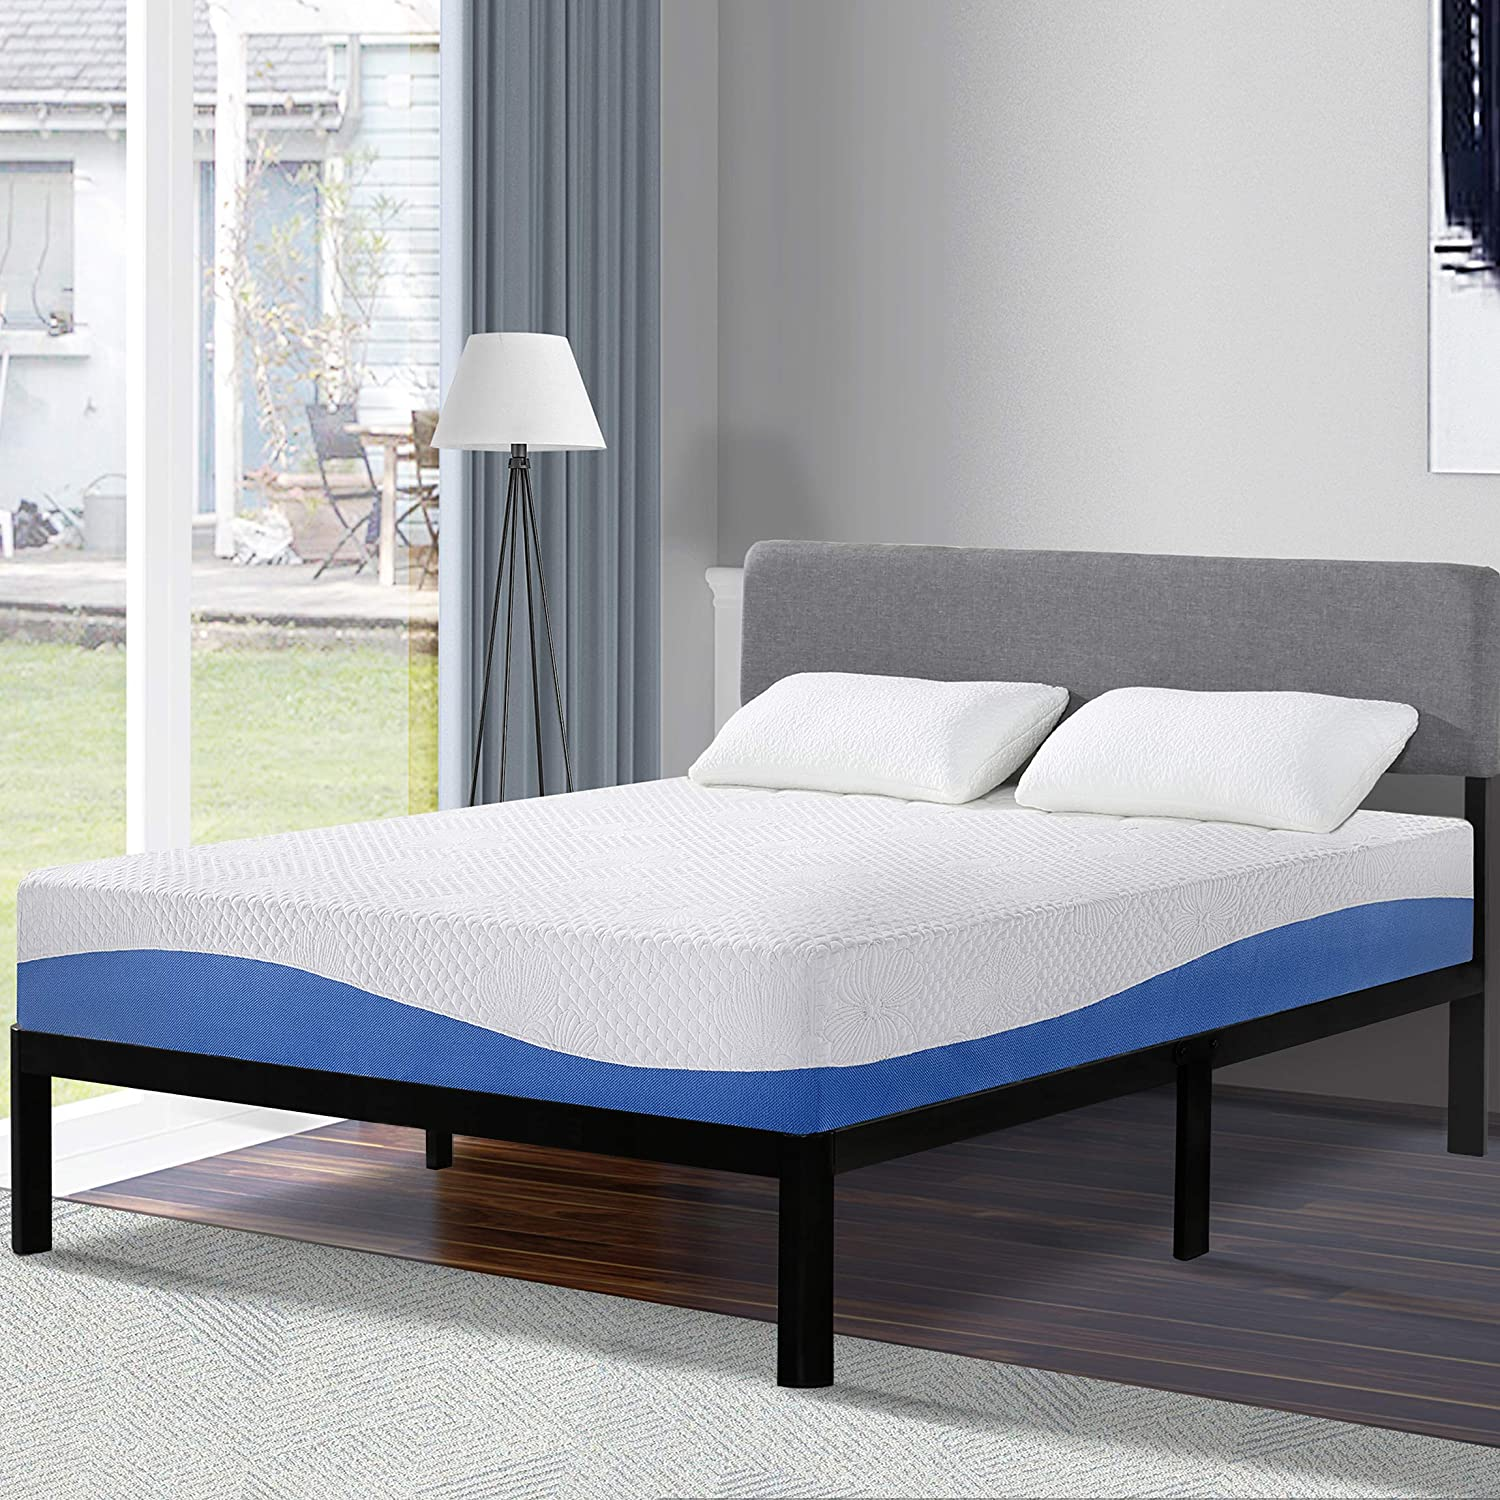 Olee Sleep Gel-Infused Memory Foam Mattress